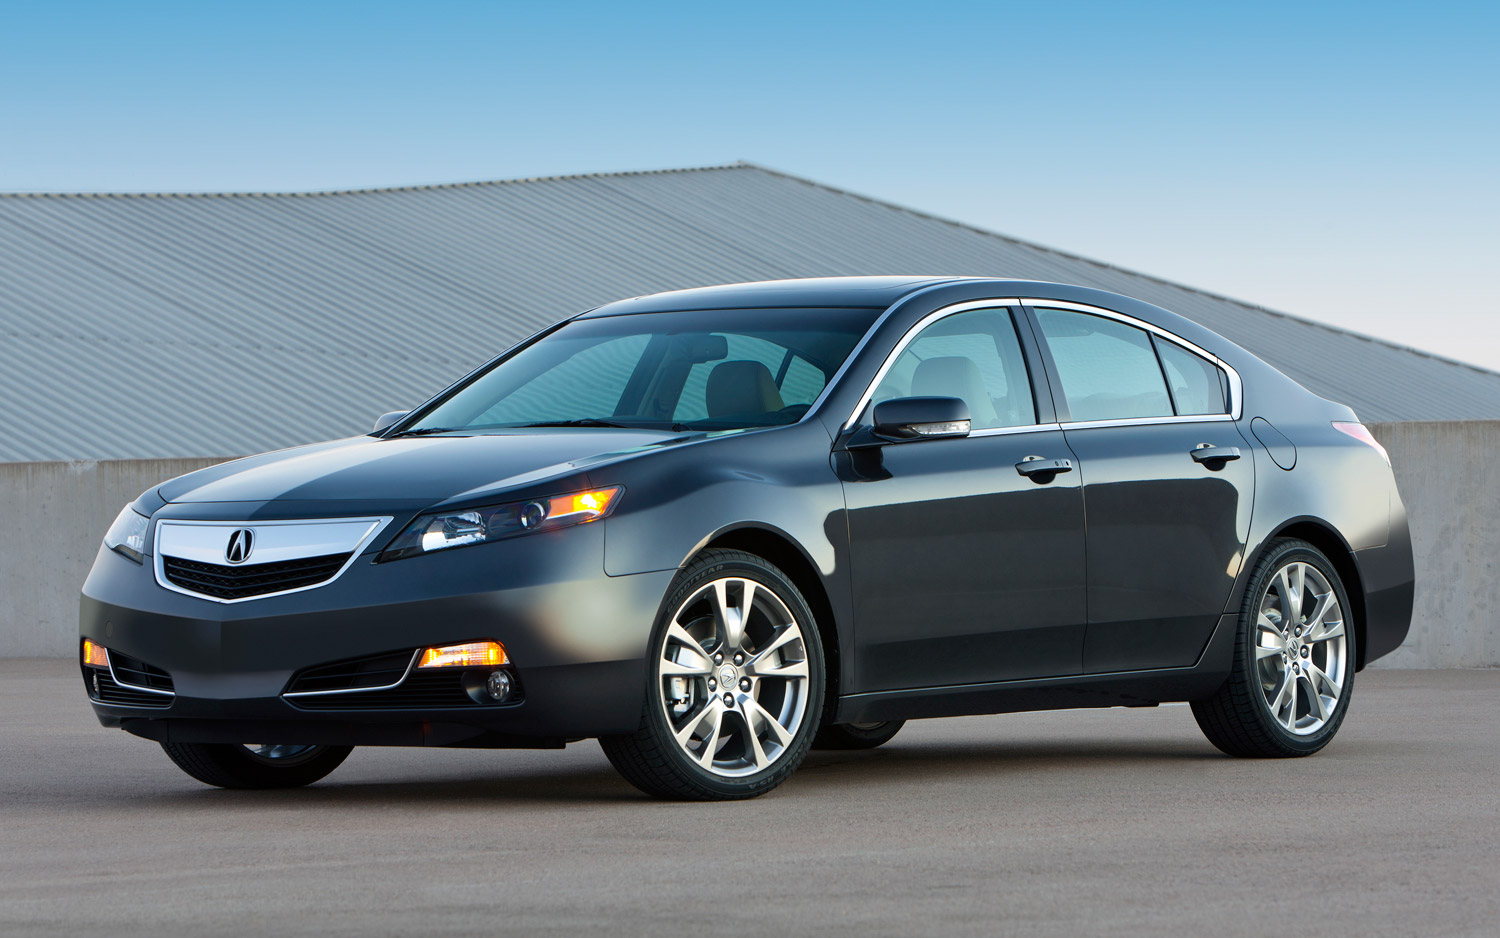 2013 acura tl priced at 36 800 awd tl with six speed manual at rh motortrend com 2013 Acura TL with Model 04 Acura TL TPMS Location